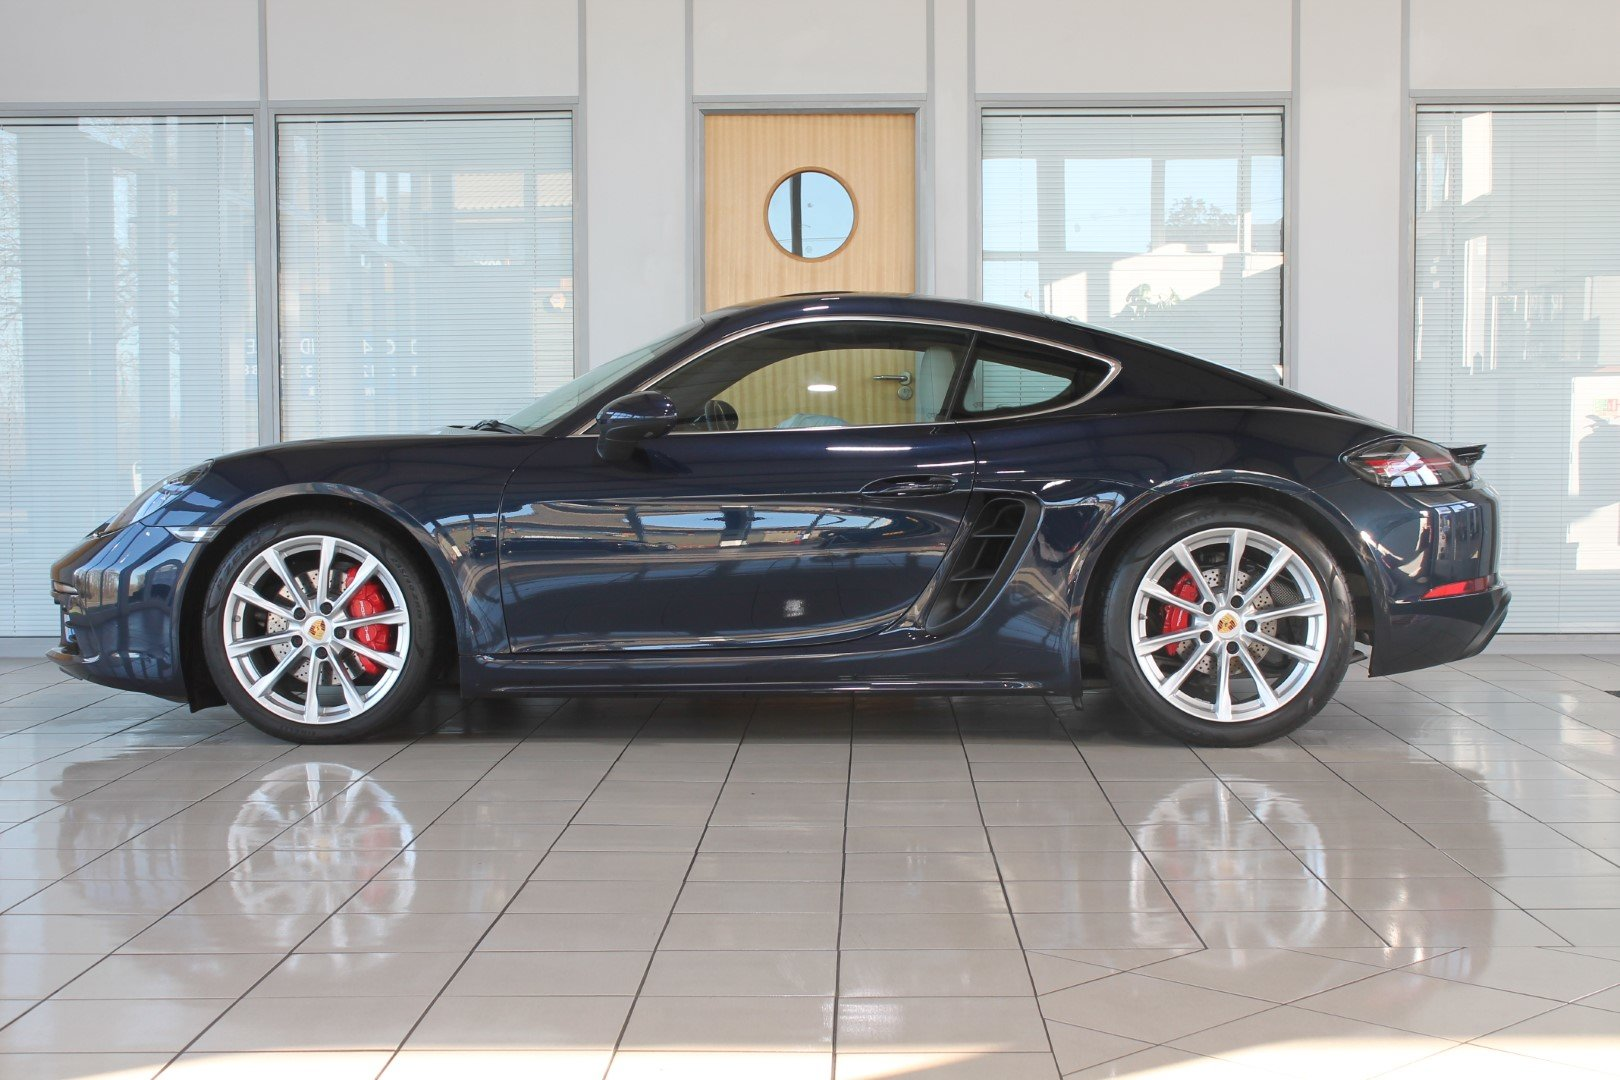 2016 Porsche Cayman (718) 2.5 S PDK - NOW SOLD - MORE REQUIRED For Sale (picture 2 of 12)